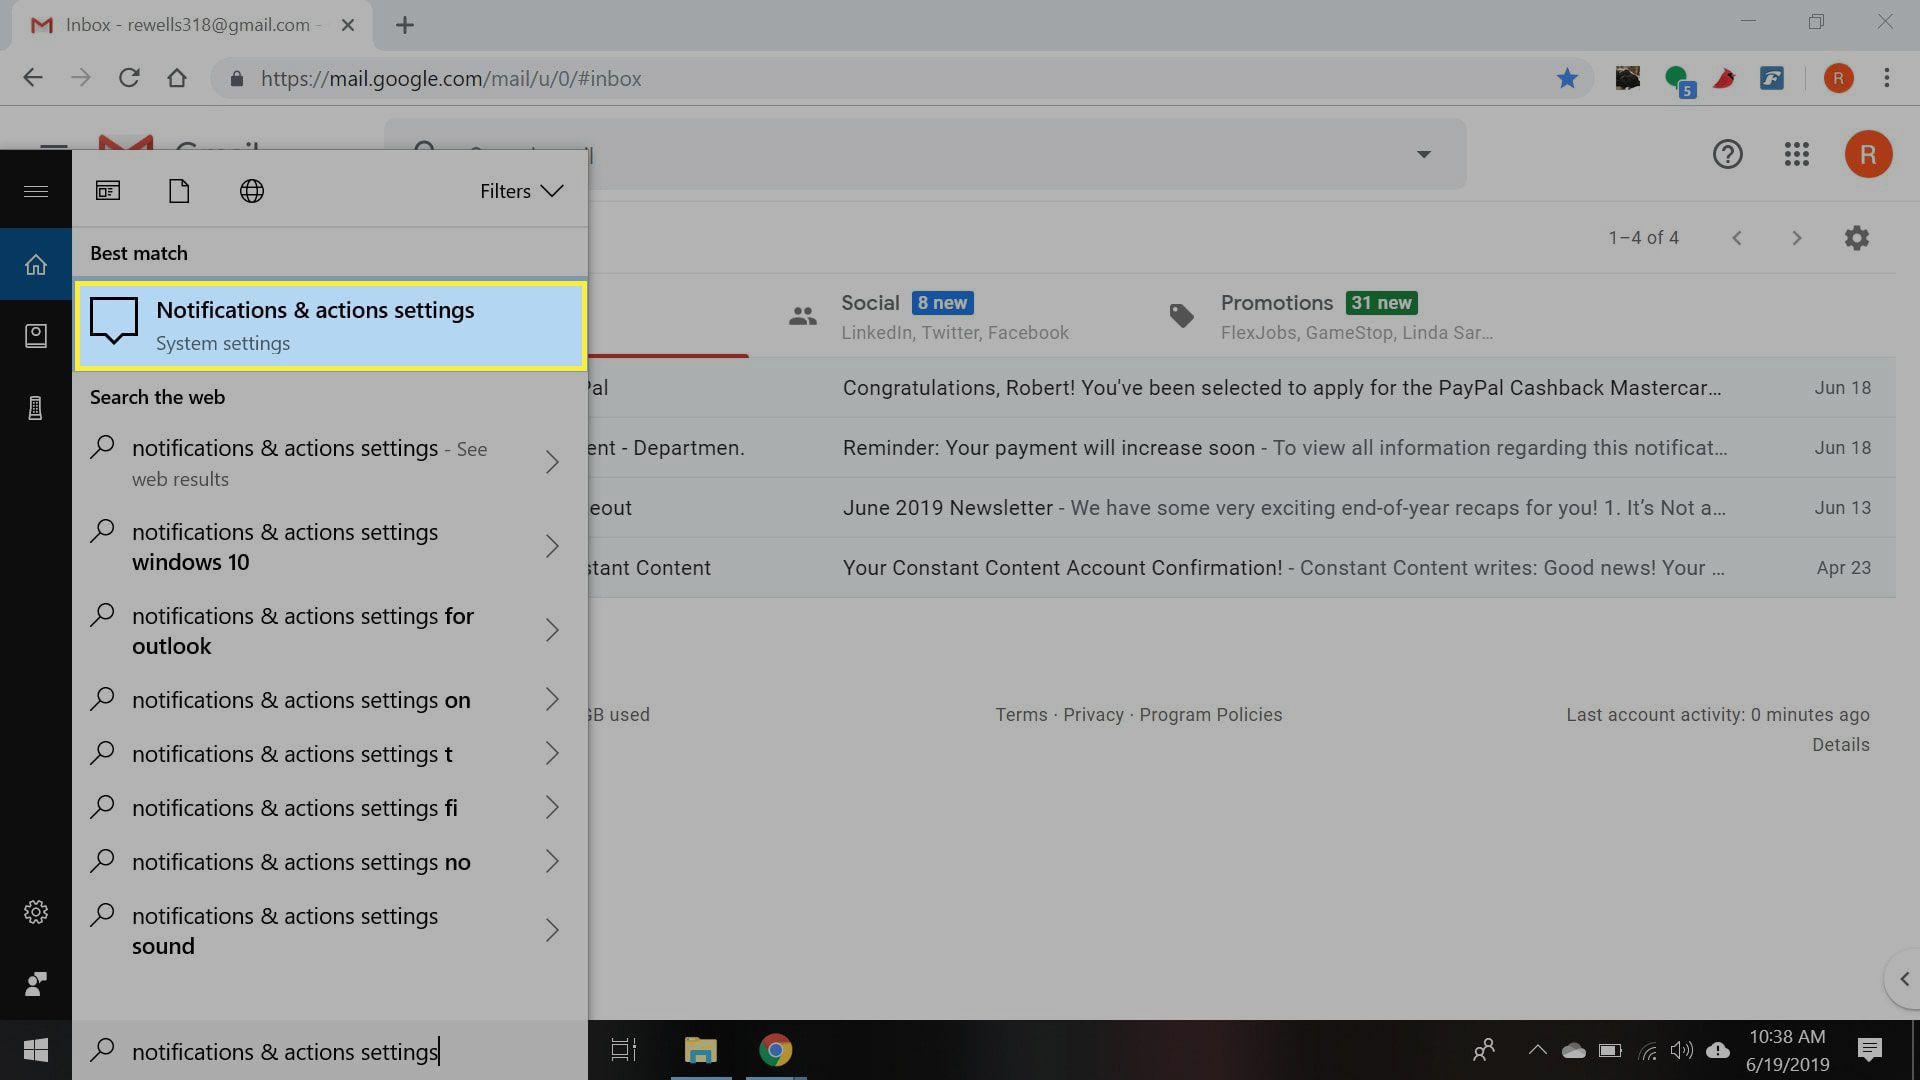 Windows with Notifications & Actions settings highlighted